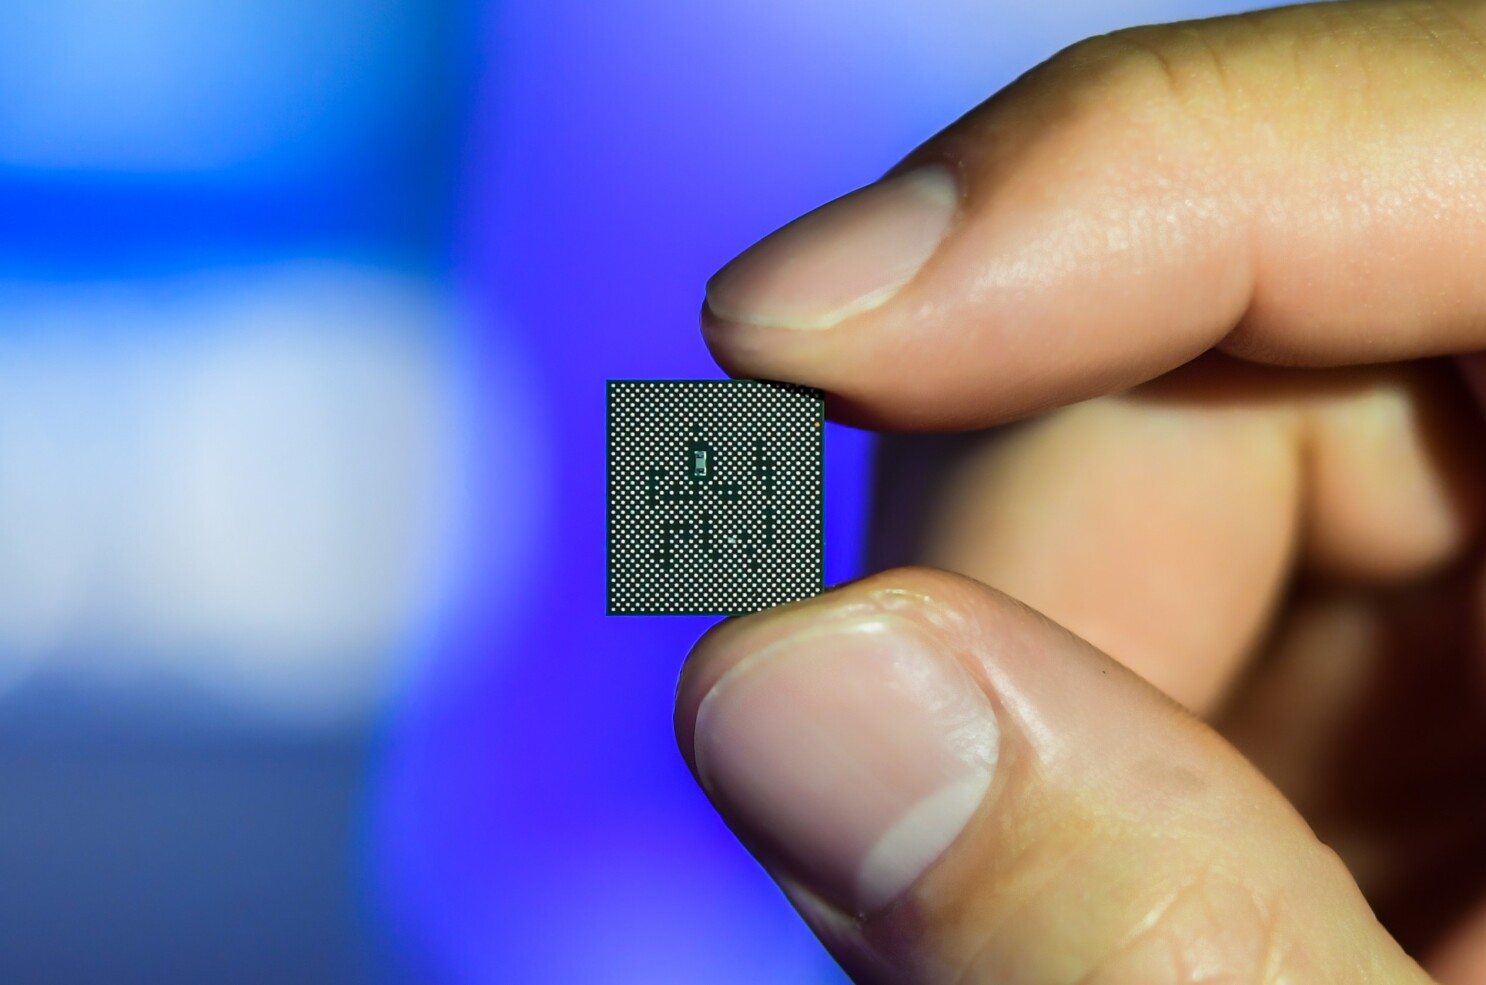 Qualcomm to launch 2 new chips for 5G Android phones in first half of 2020